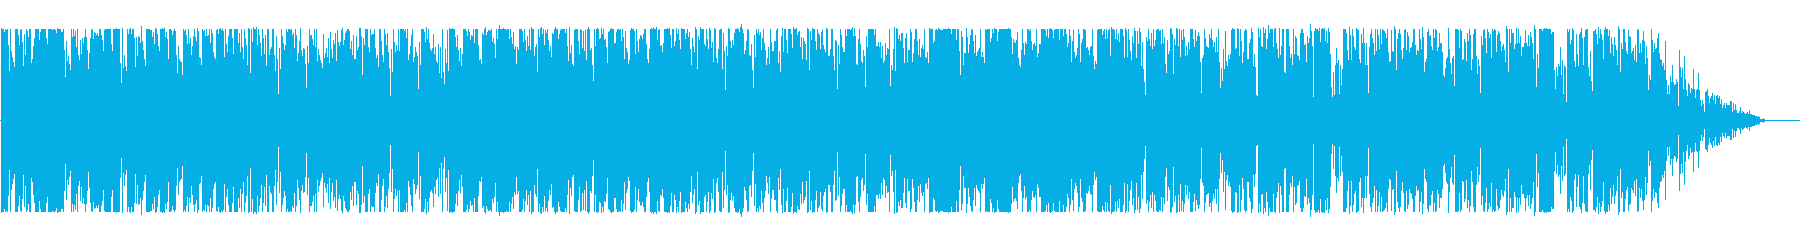 Lazy daily BGM's reproduced waveform